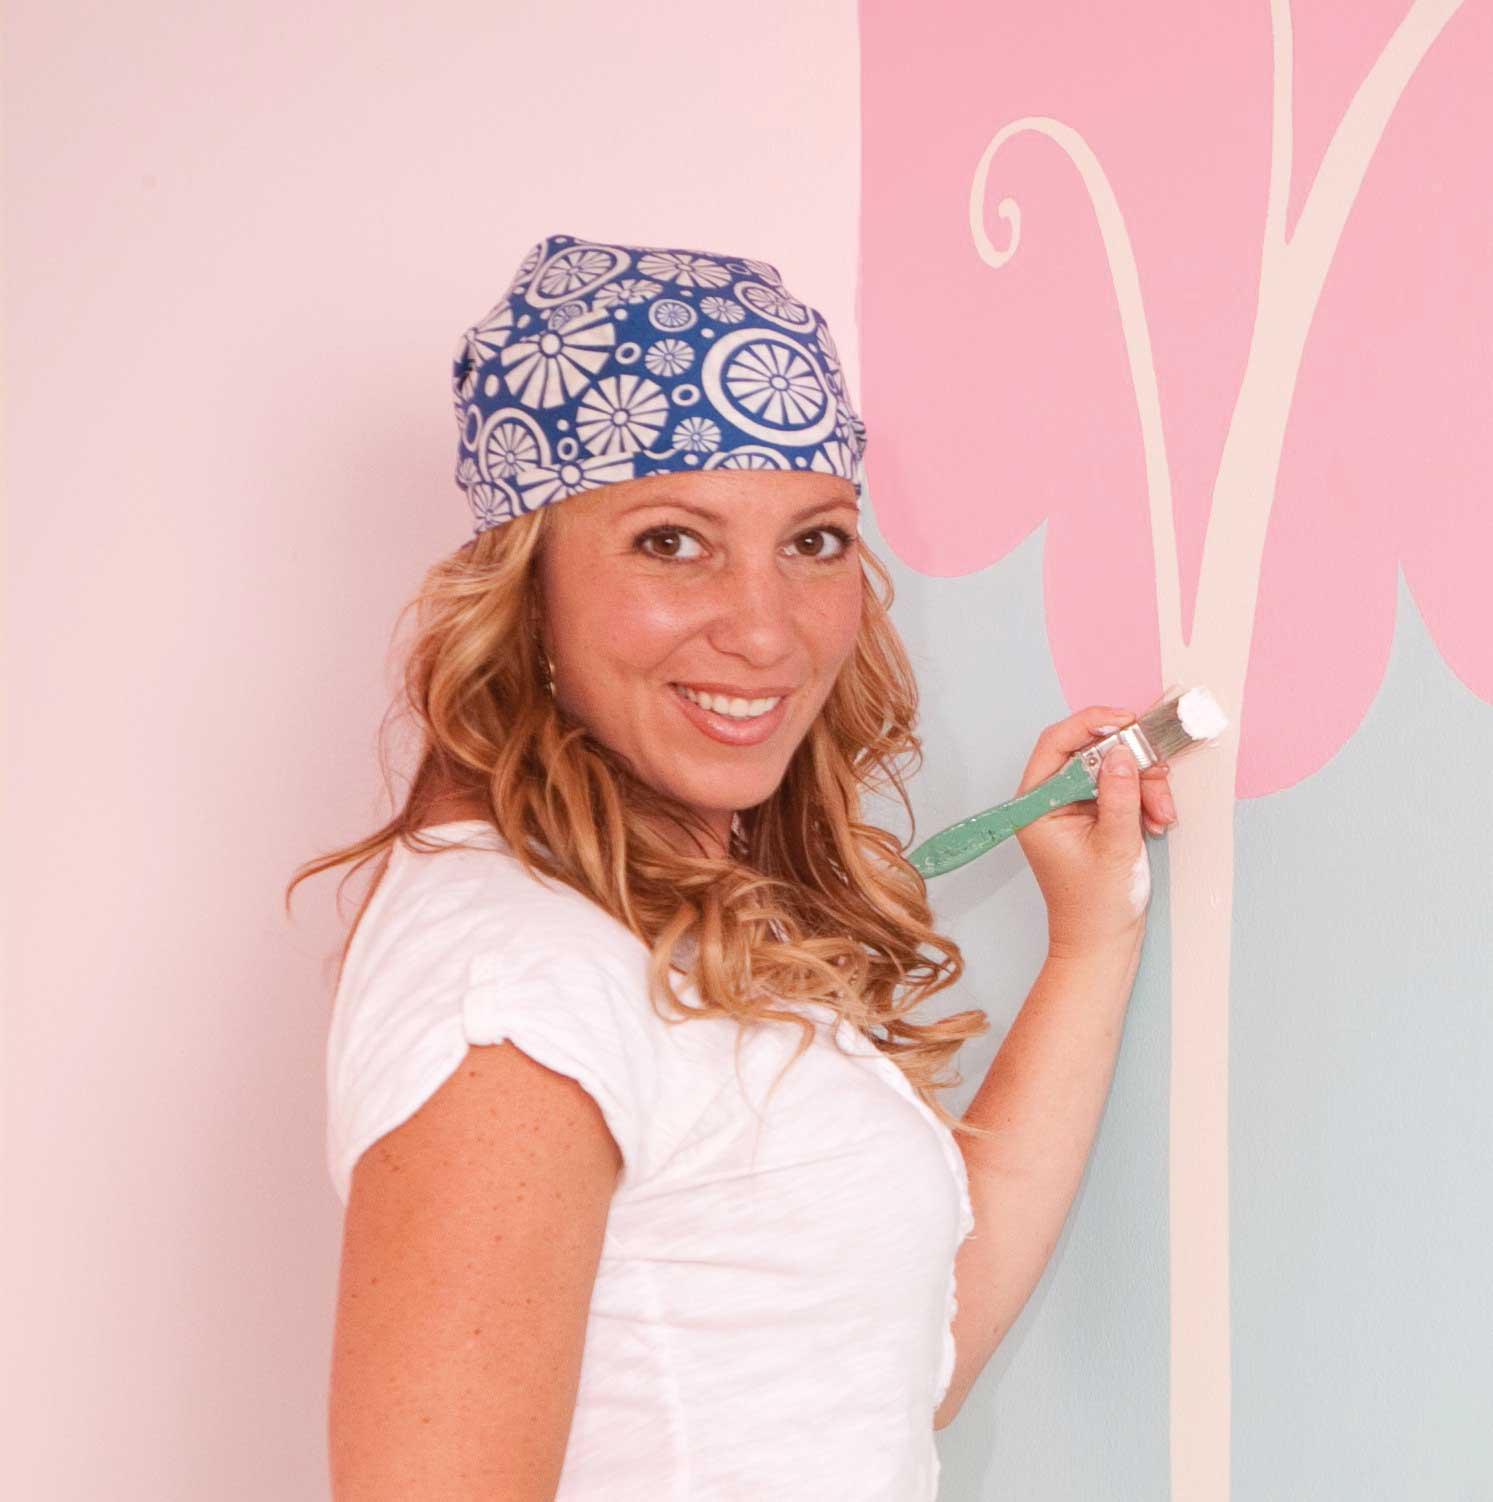 HGTV personality Rachel Kate will be featured at the Tacoma Home and Garden Show.